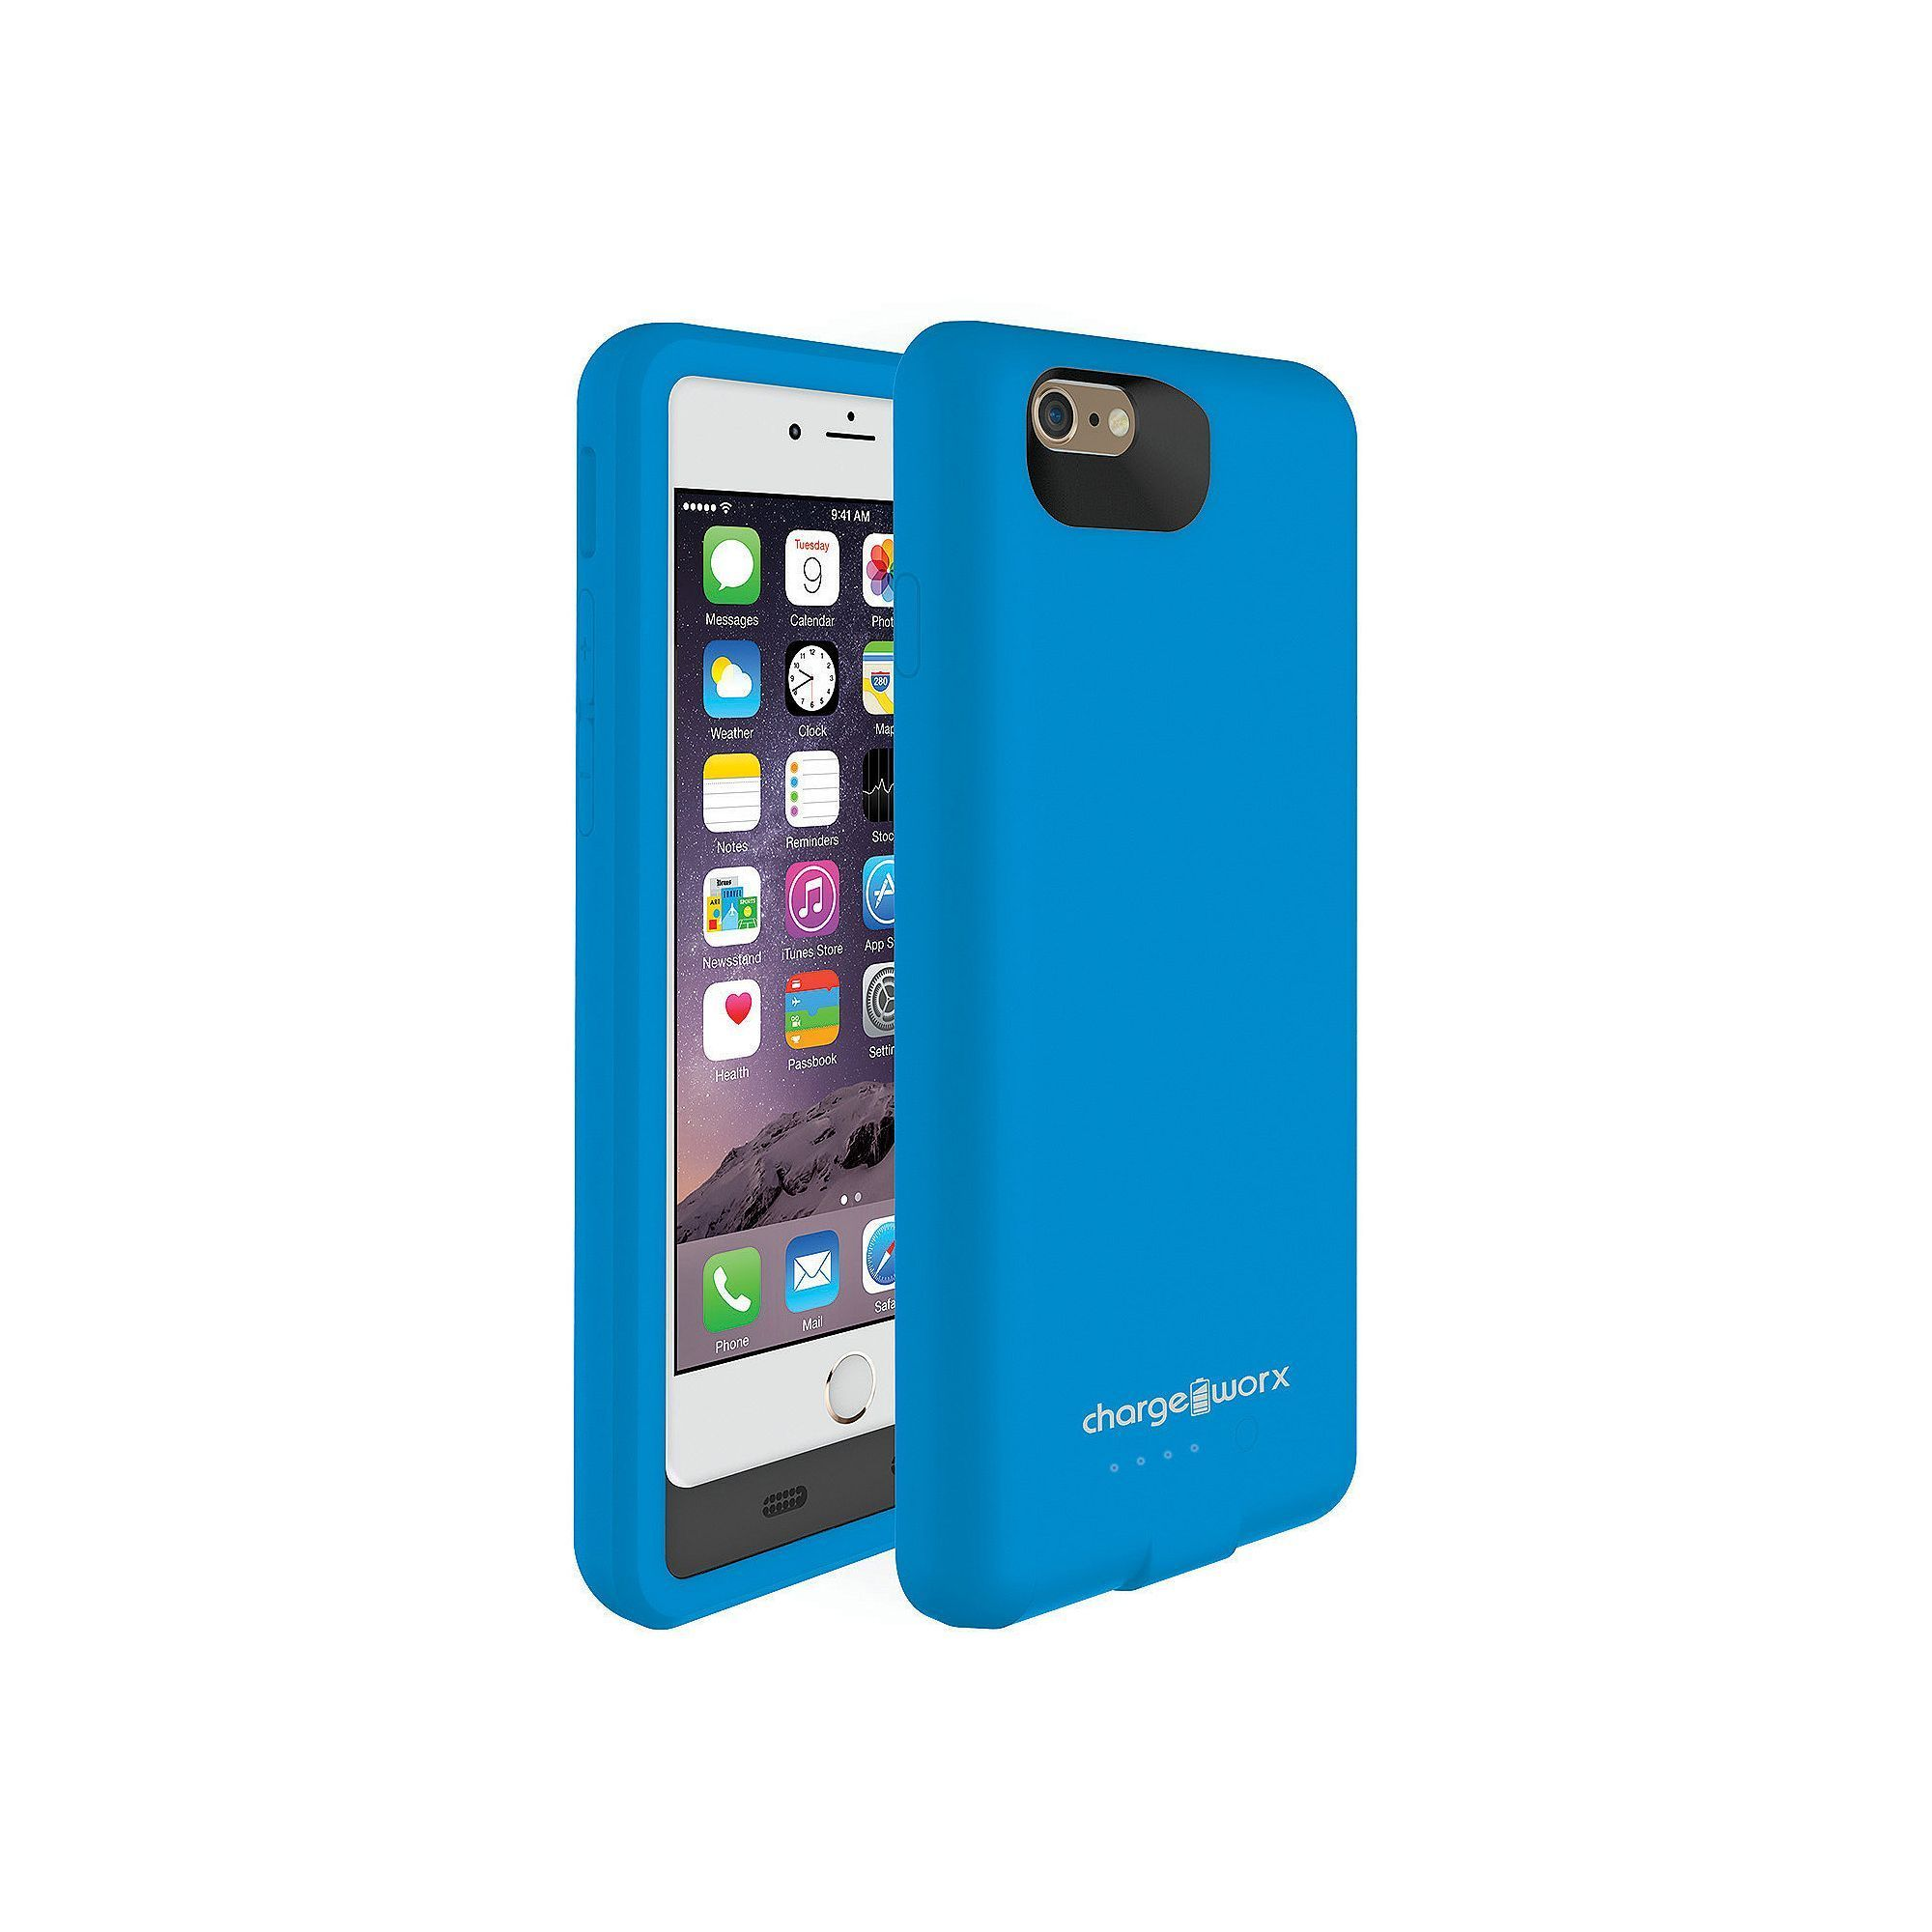 cheap for discount 9e4f8 f83e6 ChargeWorx 3000mAh Flexible iPhone 6 Battery Case   Products ...